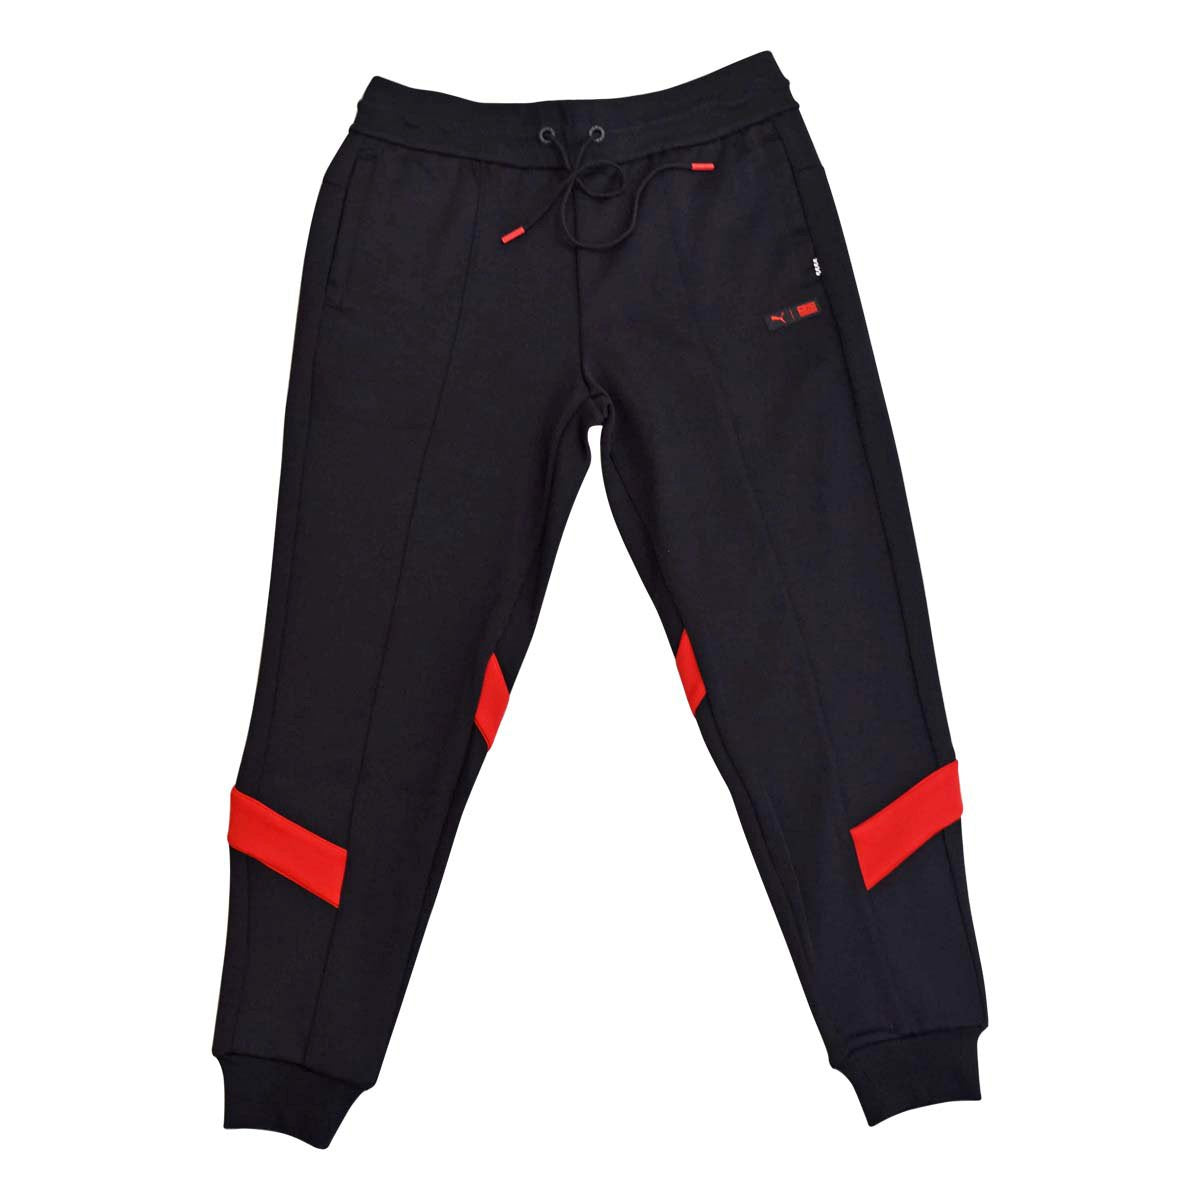 PUMA x TMC Men's MCS Track Pants